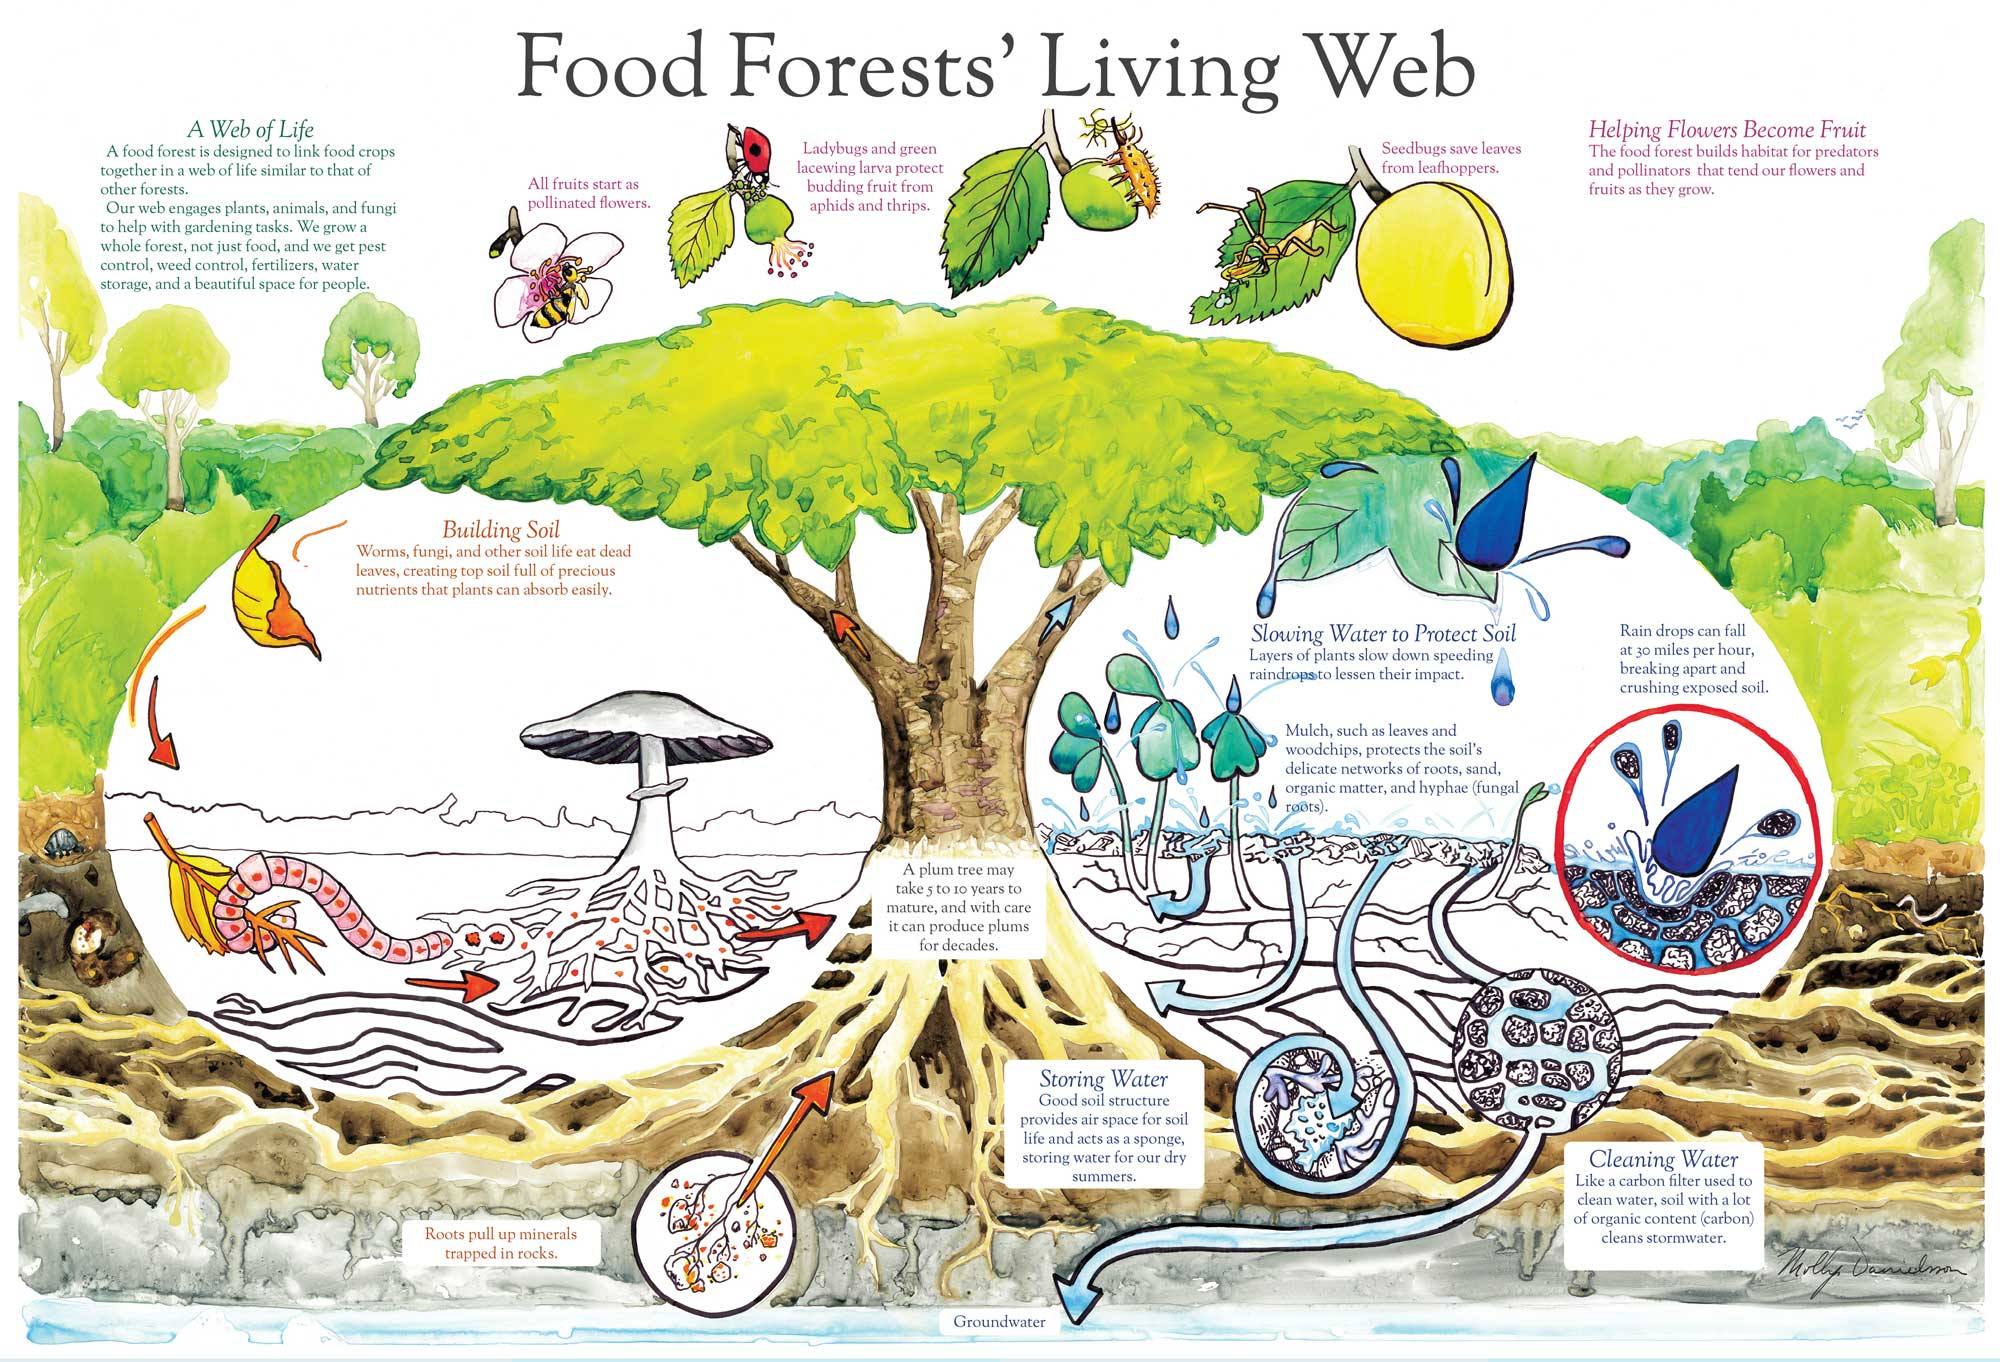 Forest gardens are probably the world's oldest form of land use and most resilient agroecosystem. - A food forest, also called a forest garden, is a diverse planting of edible plants that attempts to mimic the ecosystems and patterns found in nature. Food forests are three dimensional designs, with life extending in all directions – up, down, and out.